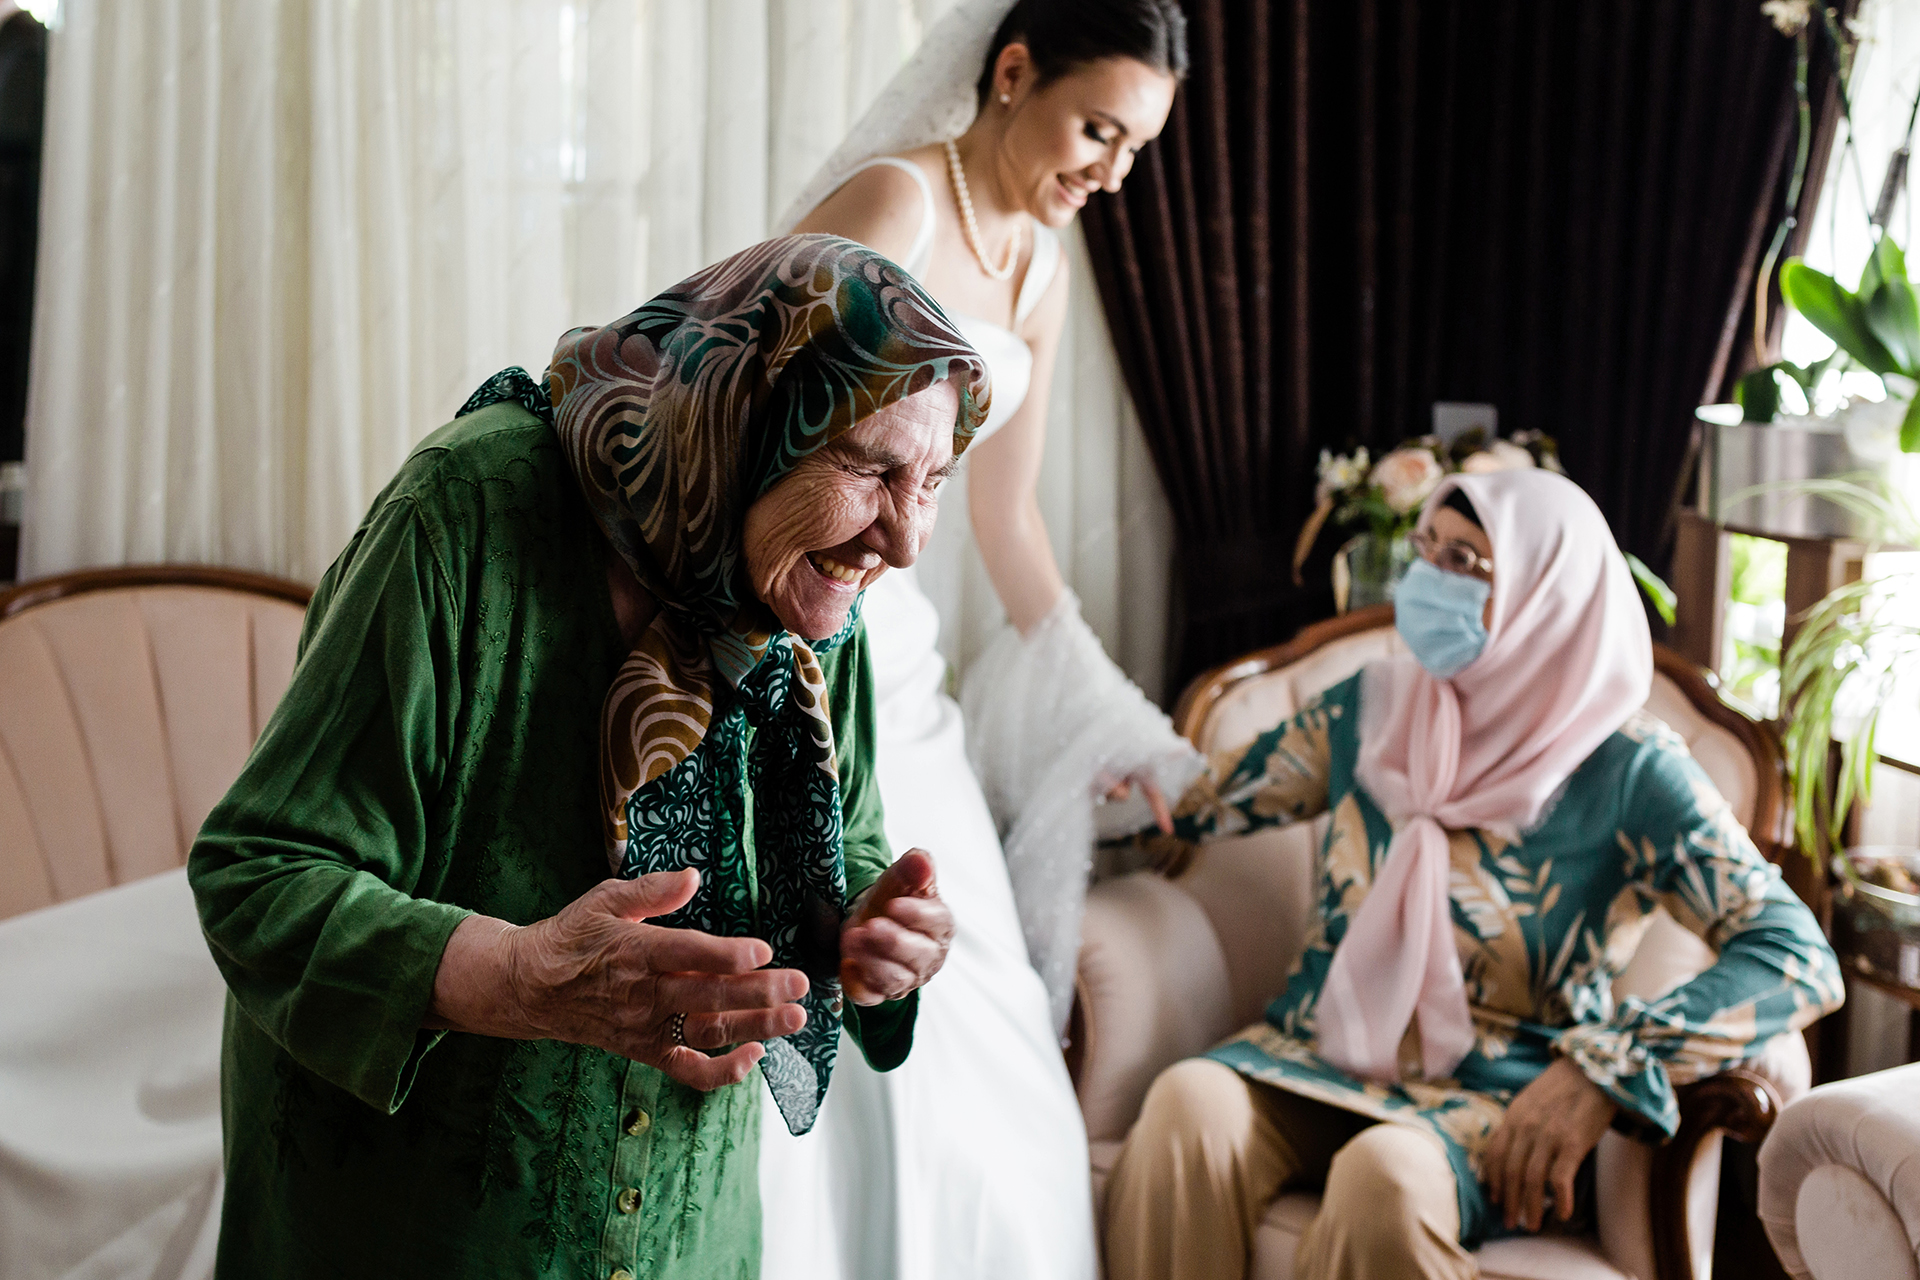 Wedding Photographers for Istanbul, Turkey | the bride's grandma is sharing her memories